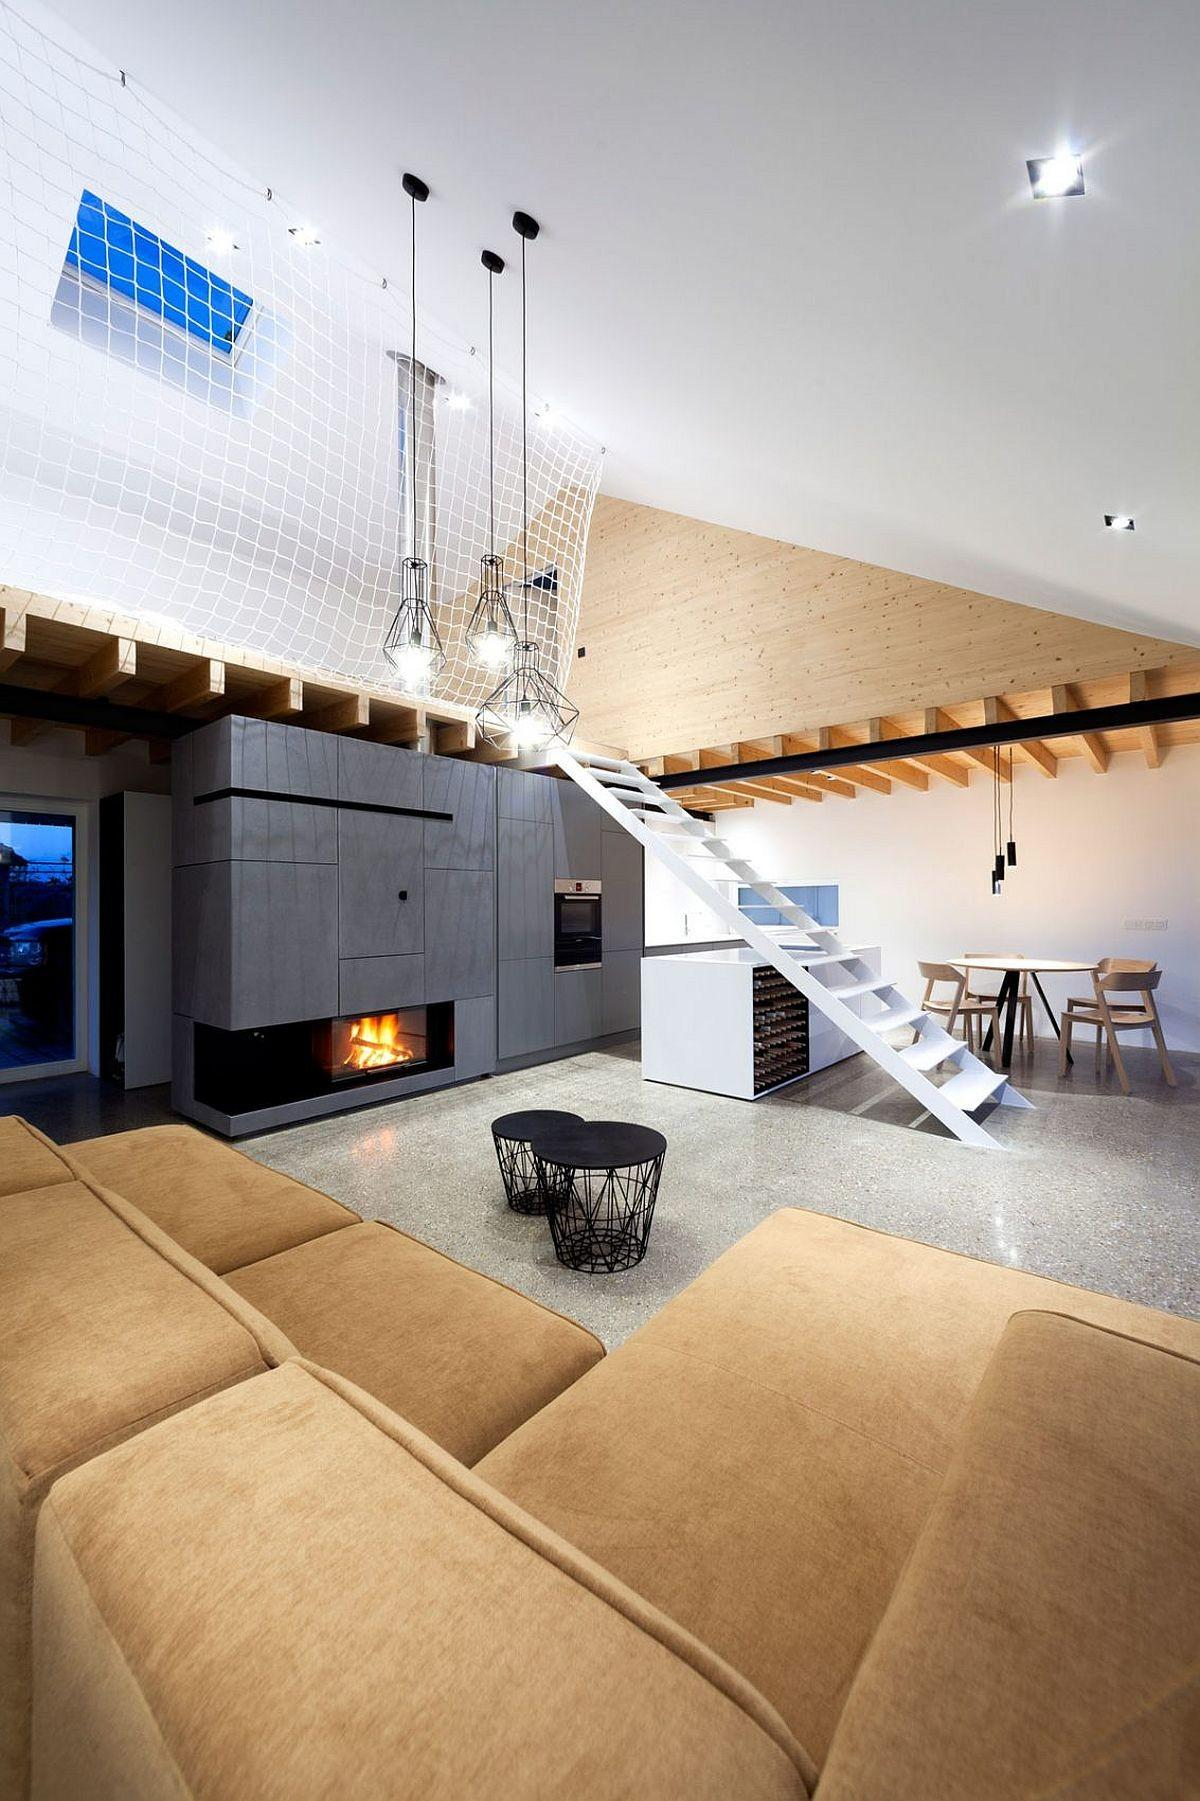 Space Savvy Home Slovakia Cleverly Utilizes Its